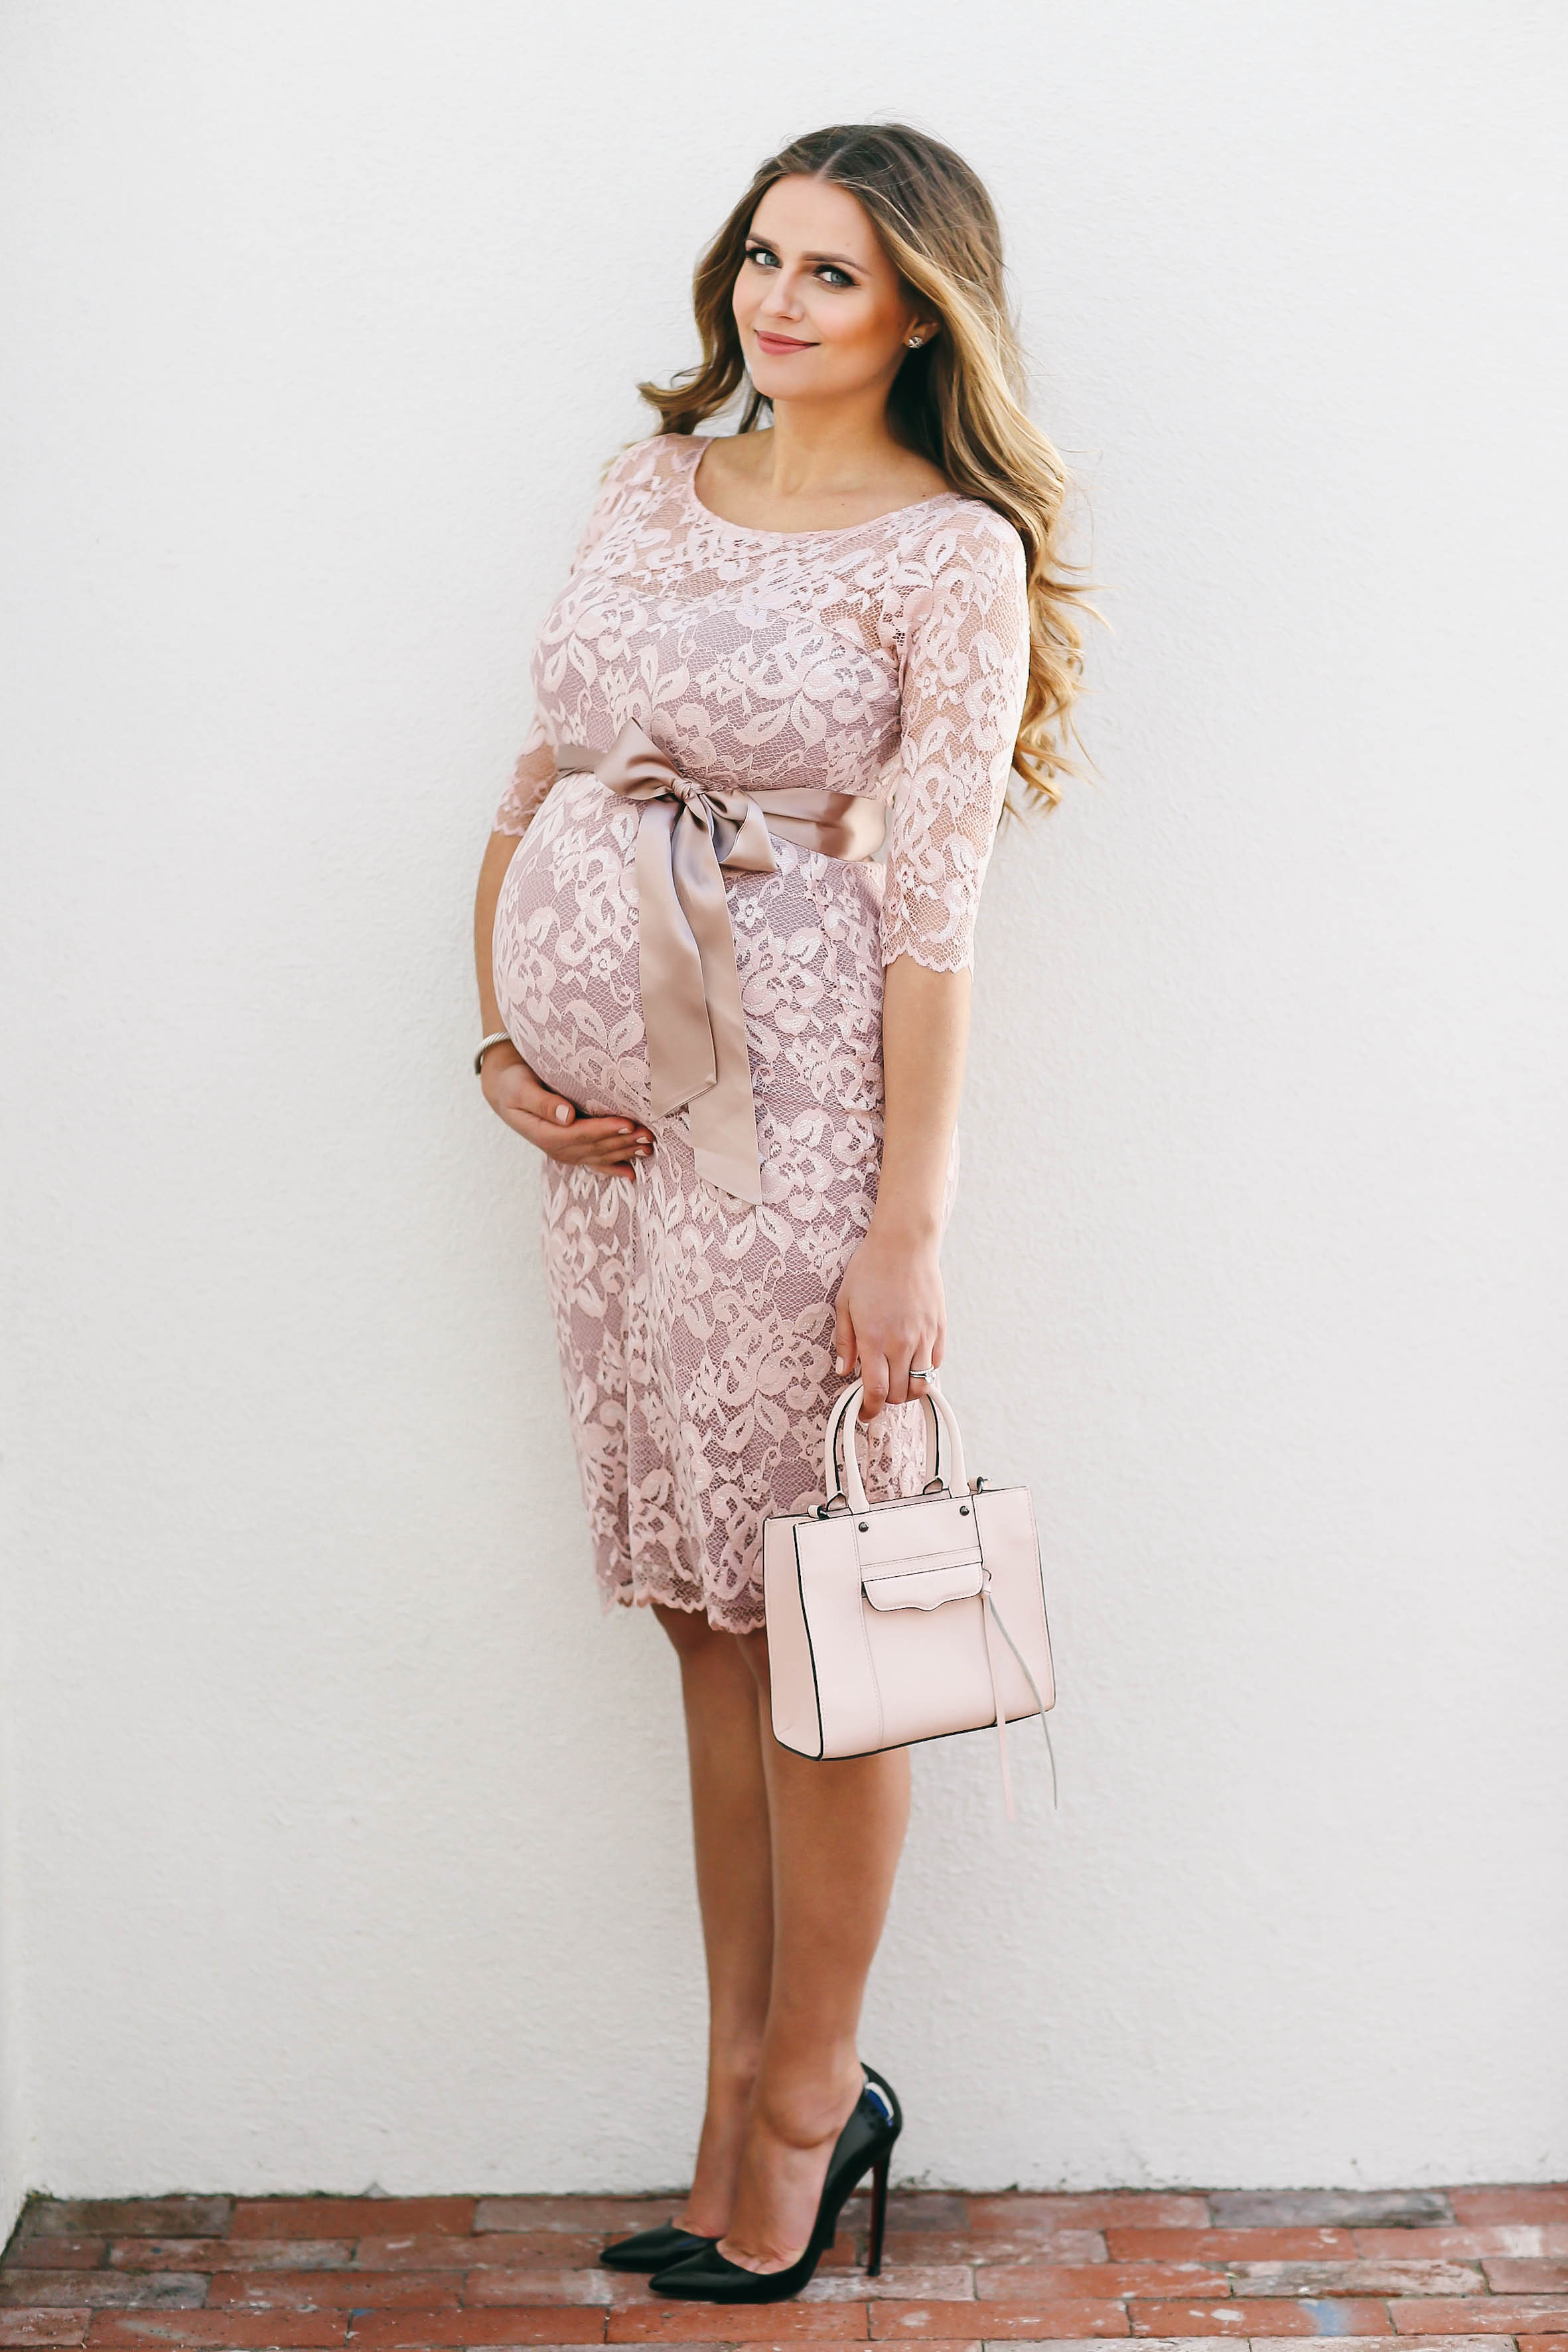 Bumpstyle blush pink lace maternity dress bondgirlglam a bumpstyle blush pink lace maternity dress bondgirlglam a fashion baby gear beauty home dcor blogbondgirlglam a fashion baby gear ombrellifo Choice Image